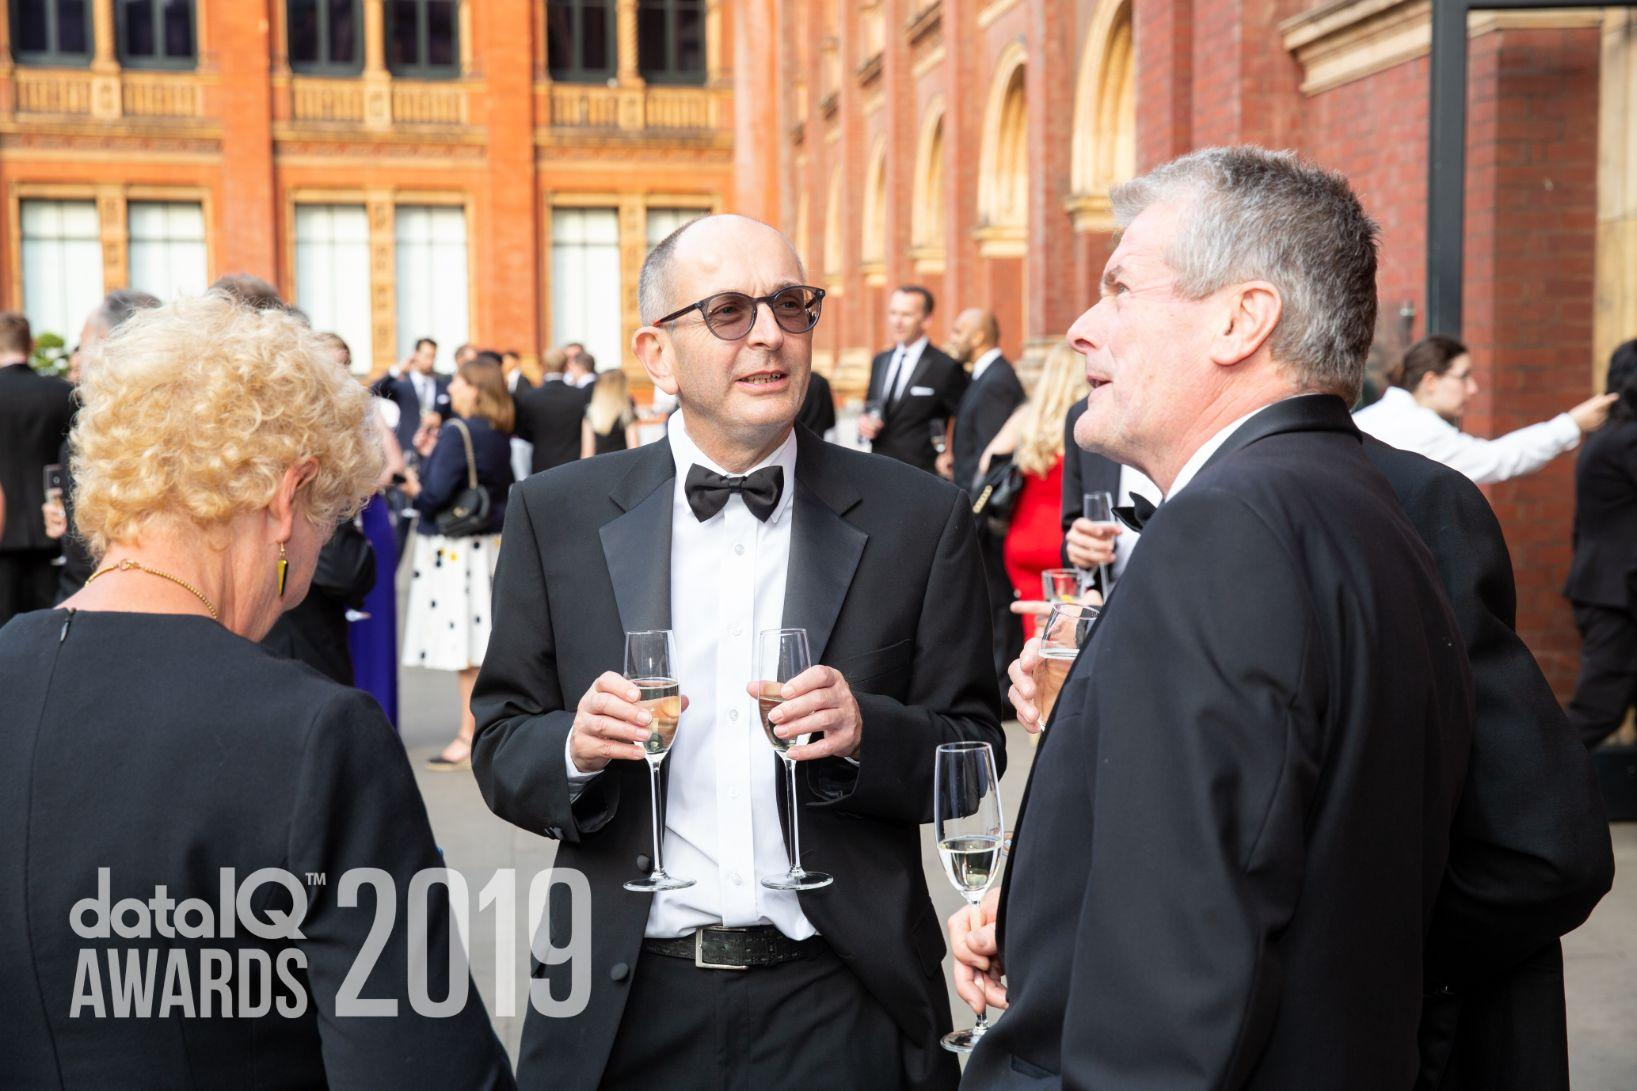 Awards 2019 Image 53